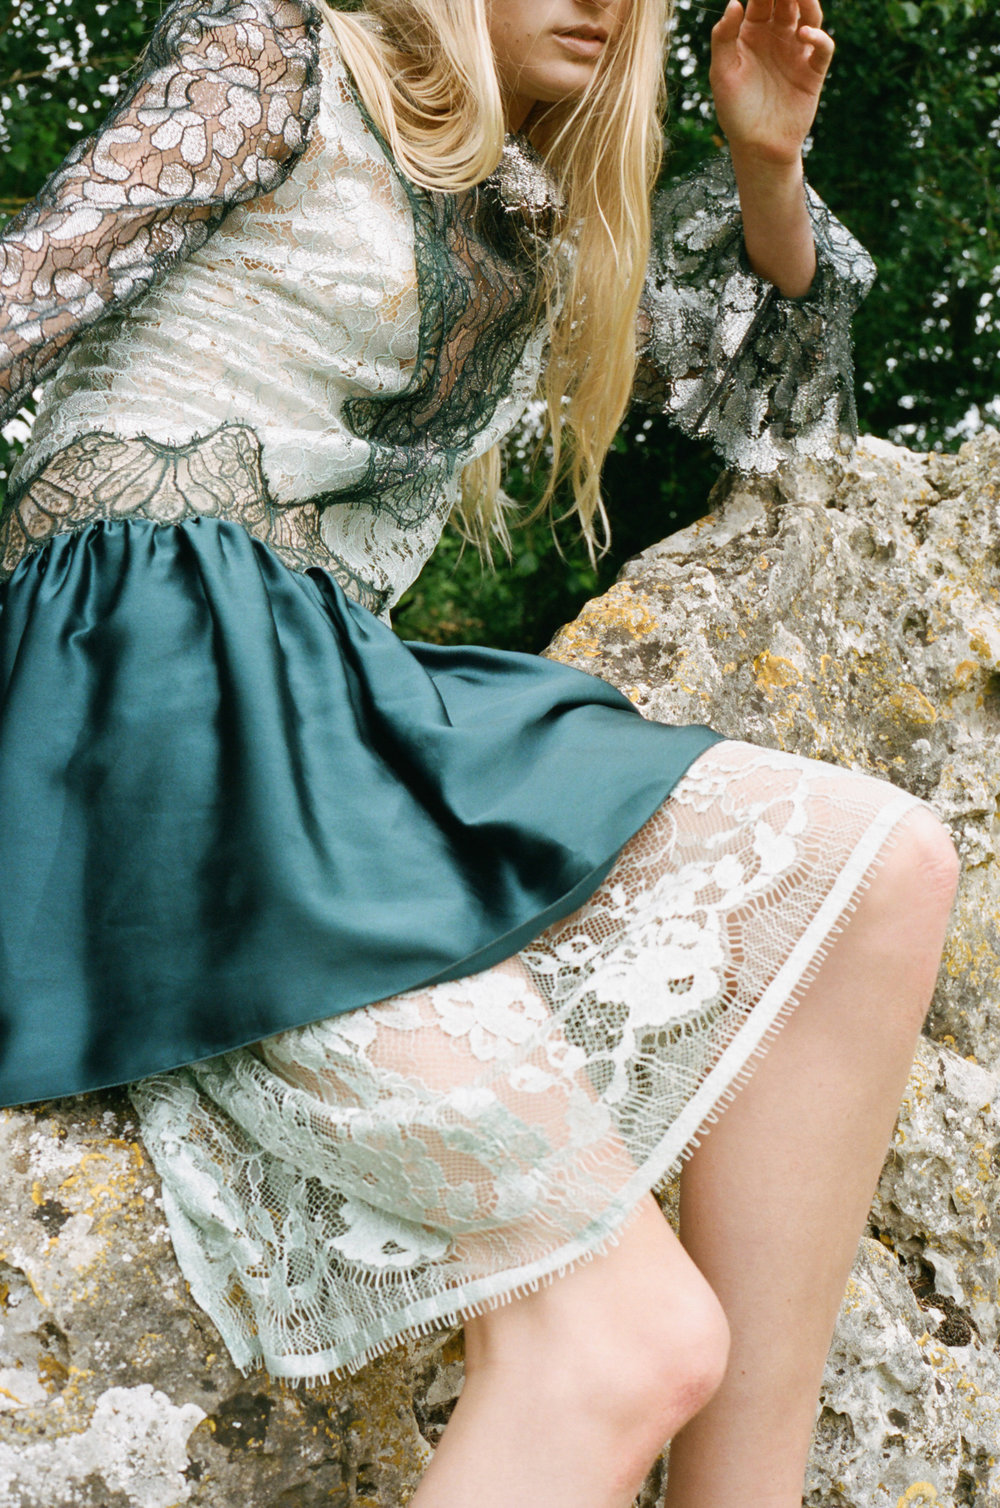 amber_mahoney_lula_japan_english_countryside_fashion_editorial_film_012.jpg